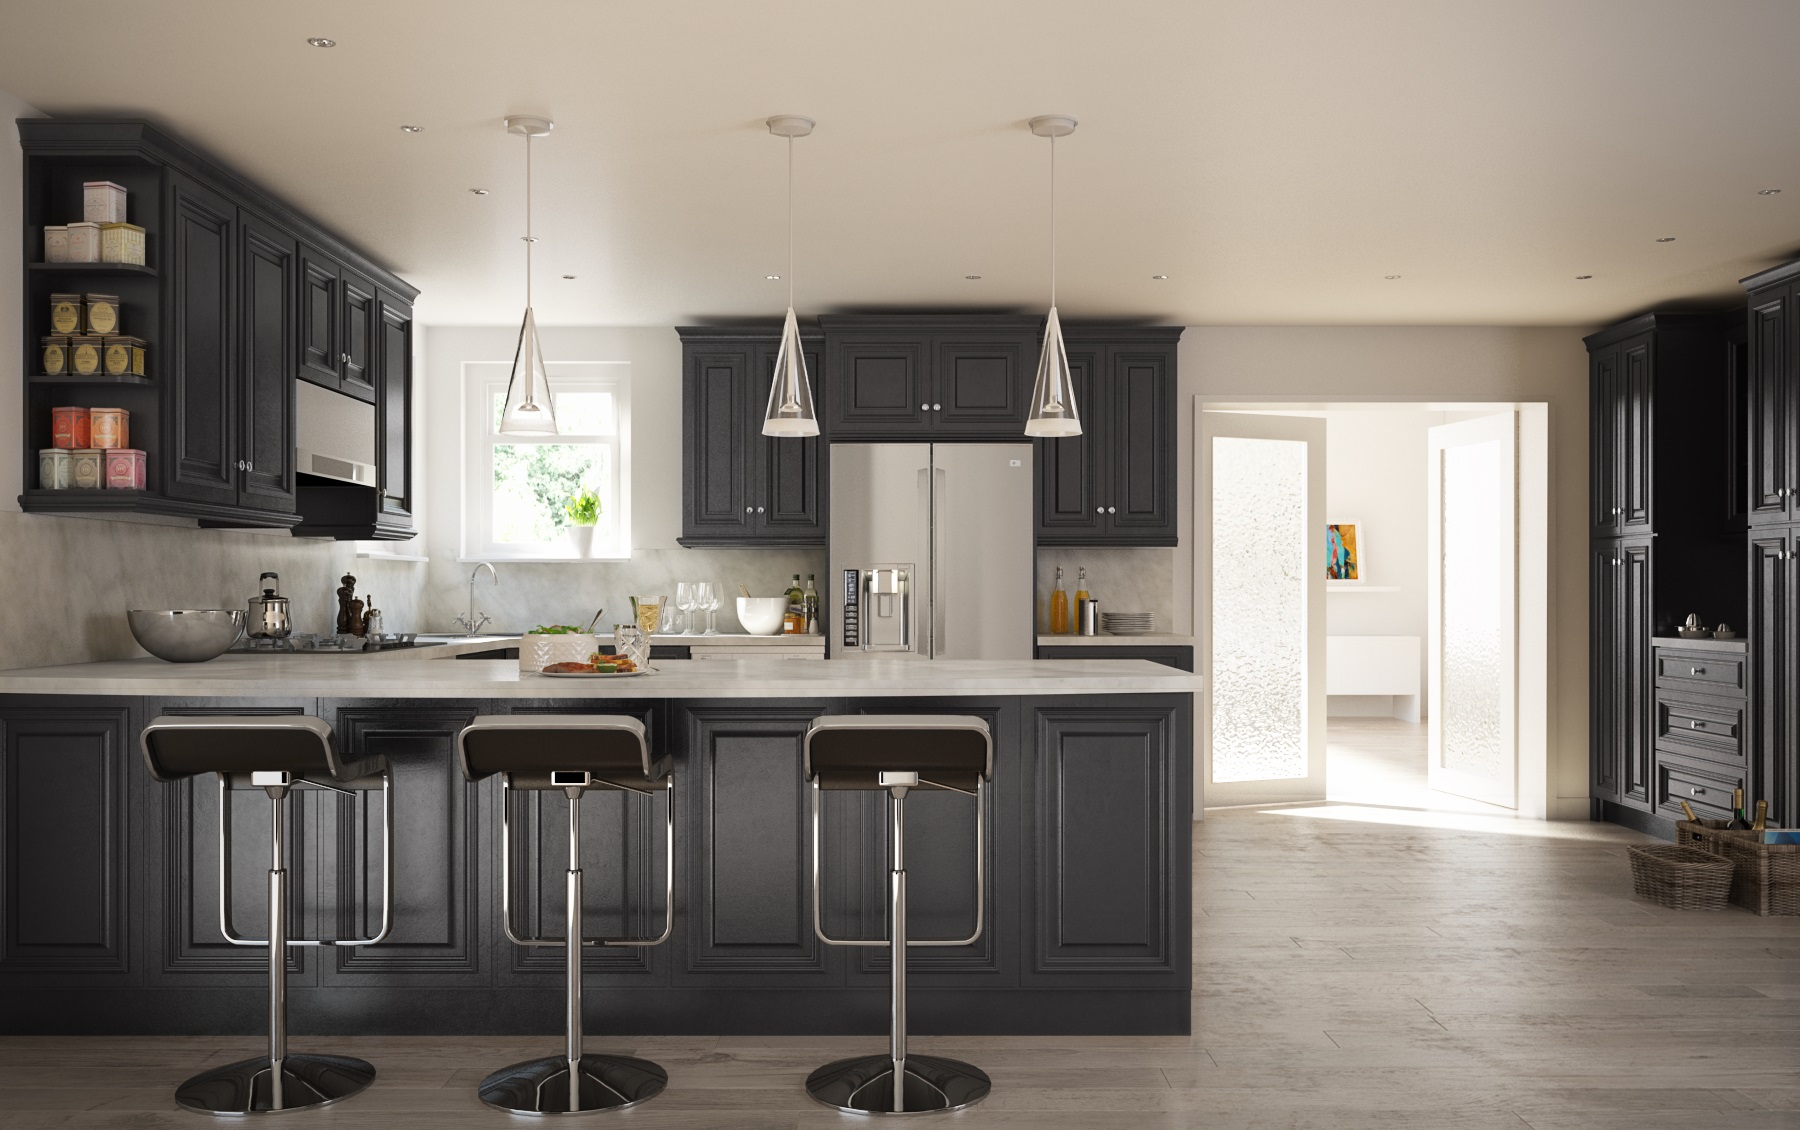 Legacy Black Kitchen Cabinets - Willow Lane Cabinetry